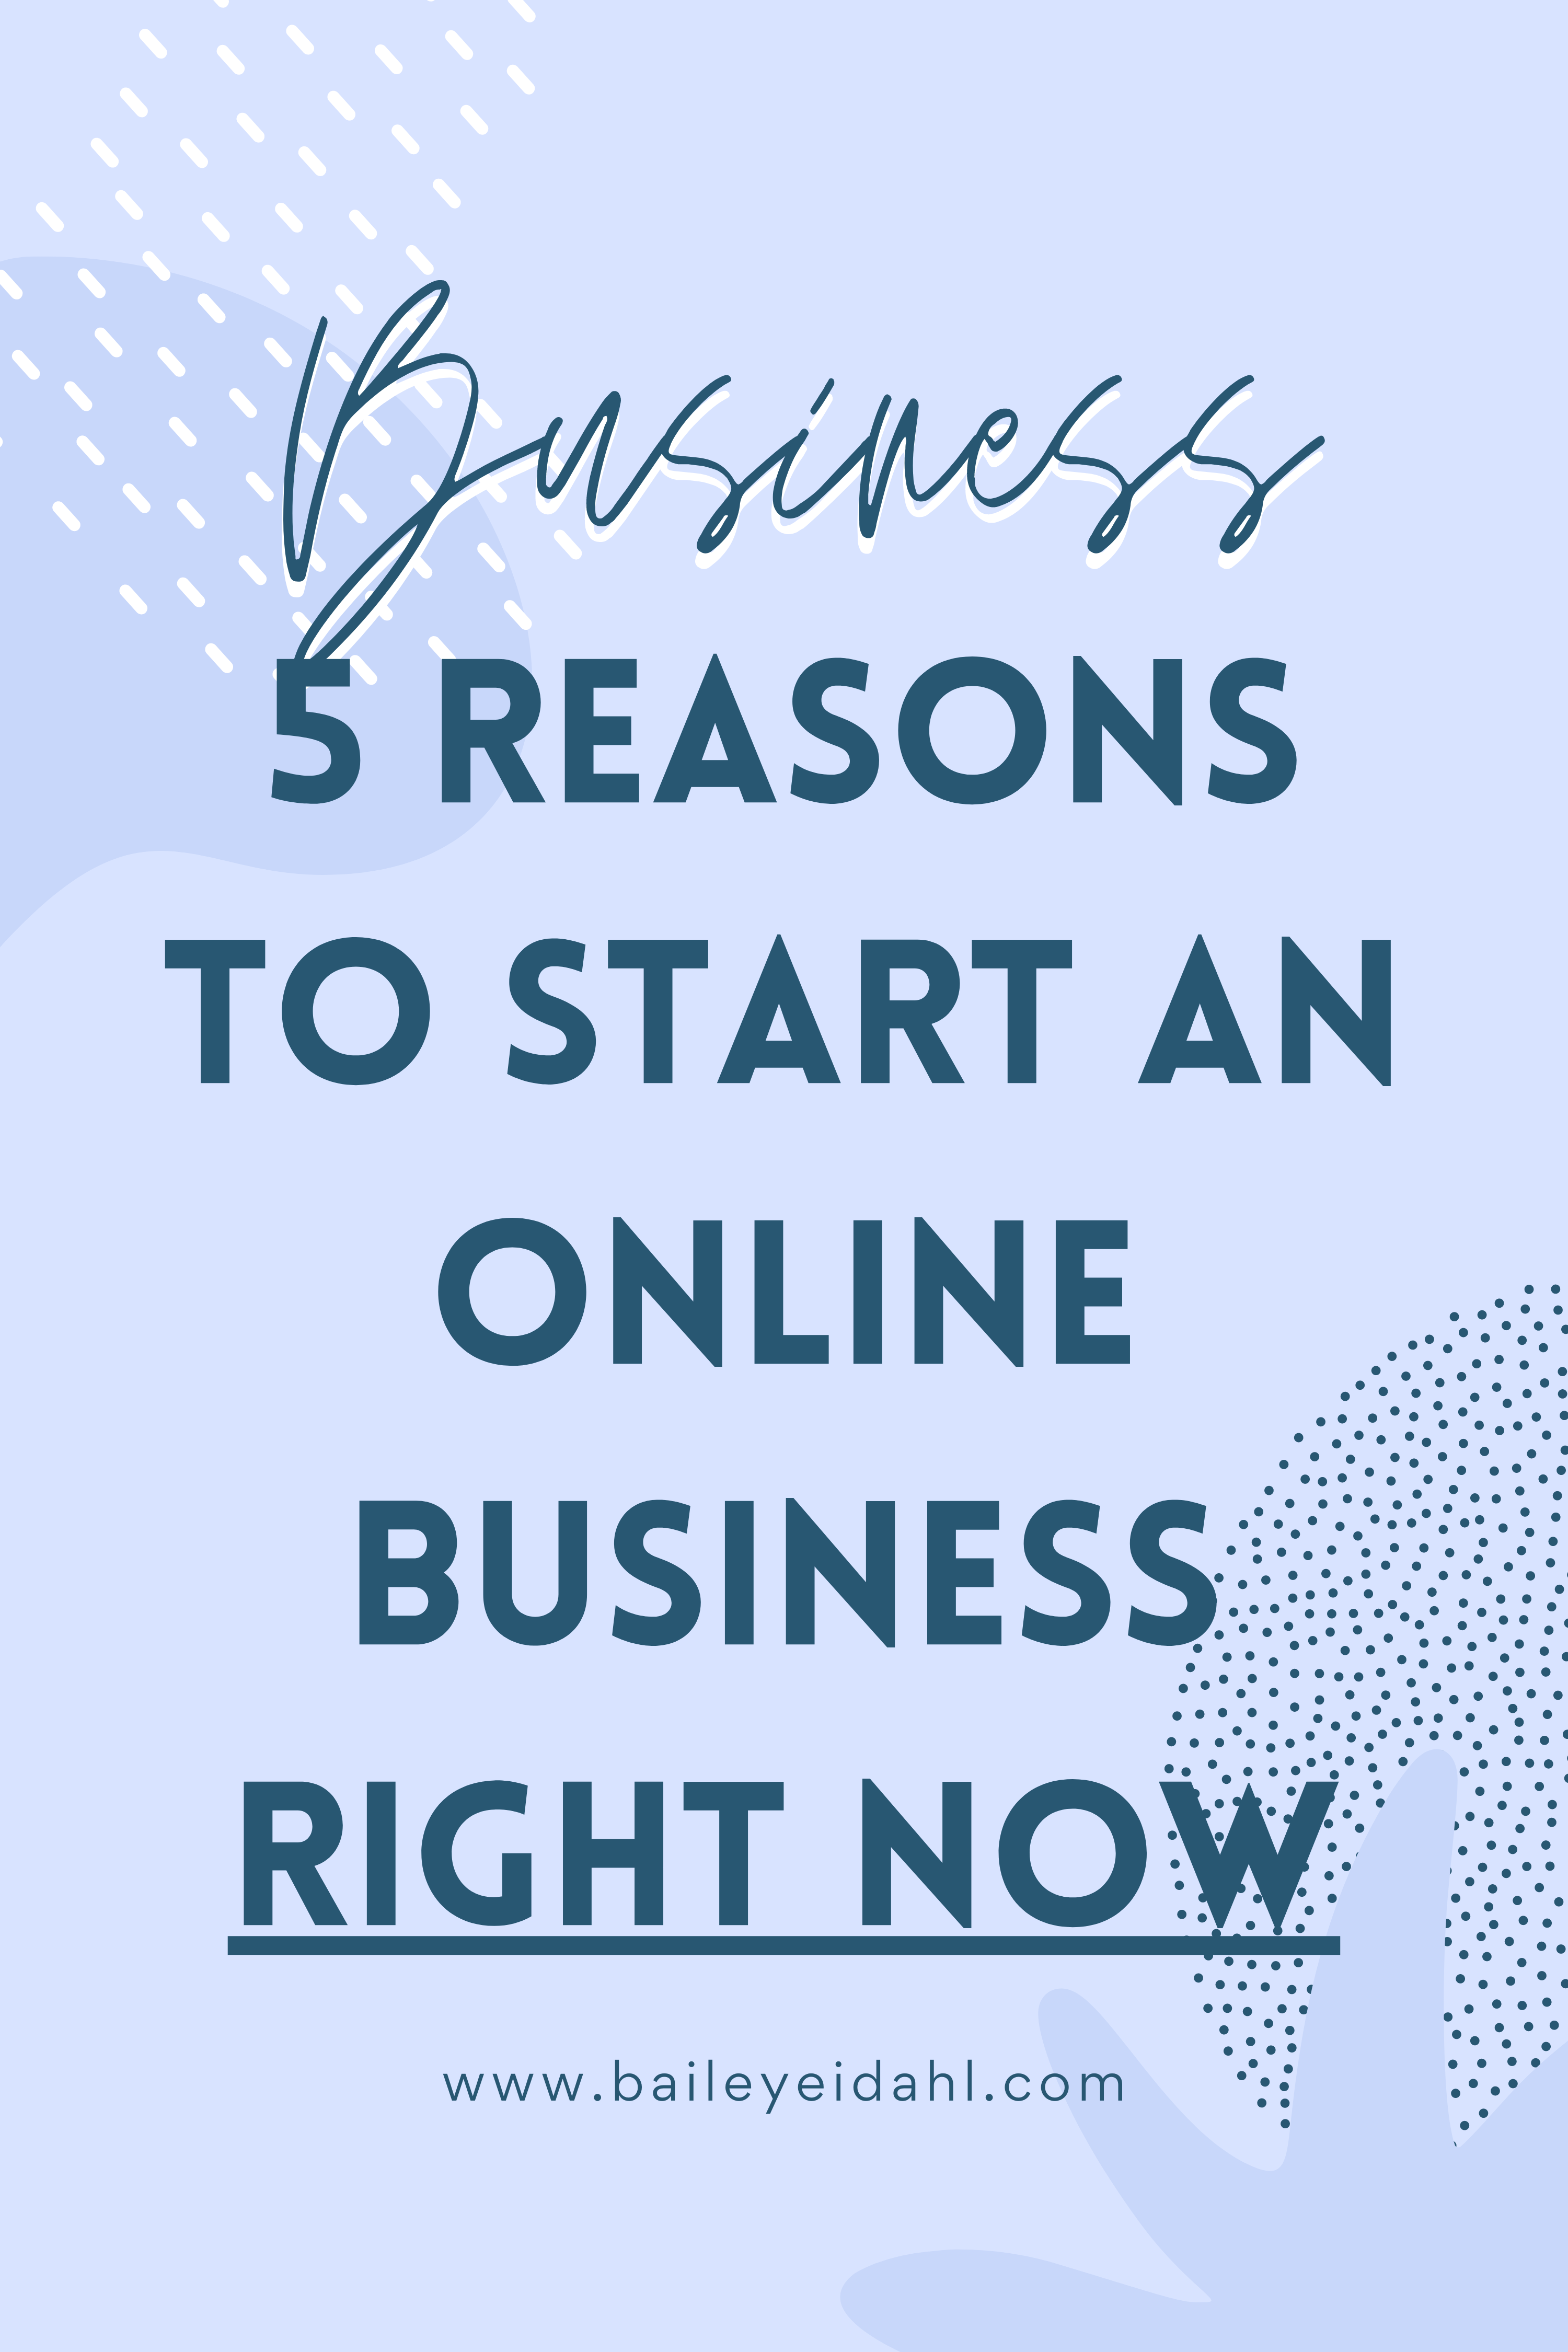 5 Reasons Why Now Is The Time To Start An Online Business Online Business Start Online Business Business Blog